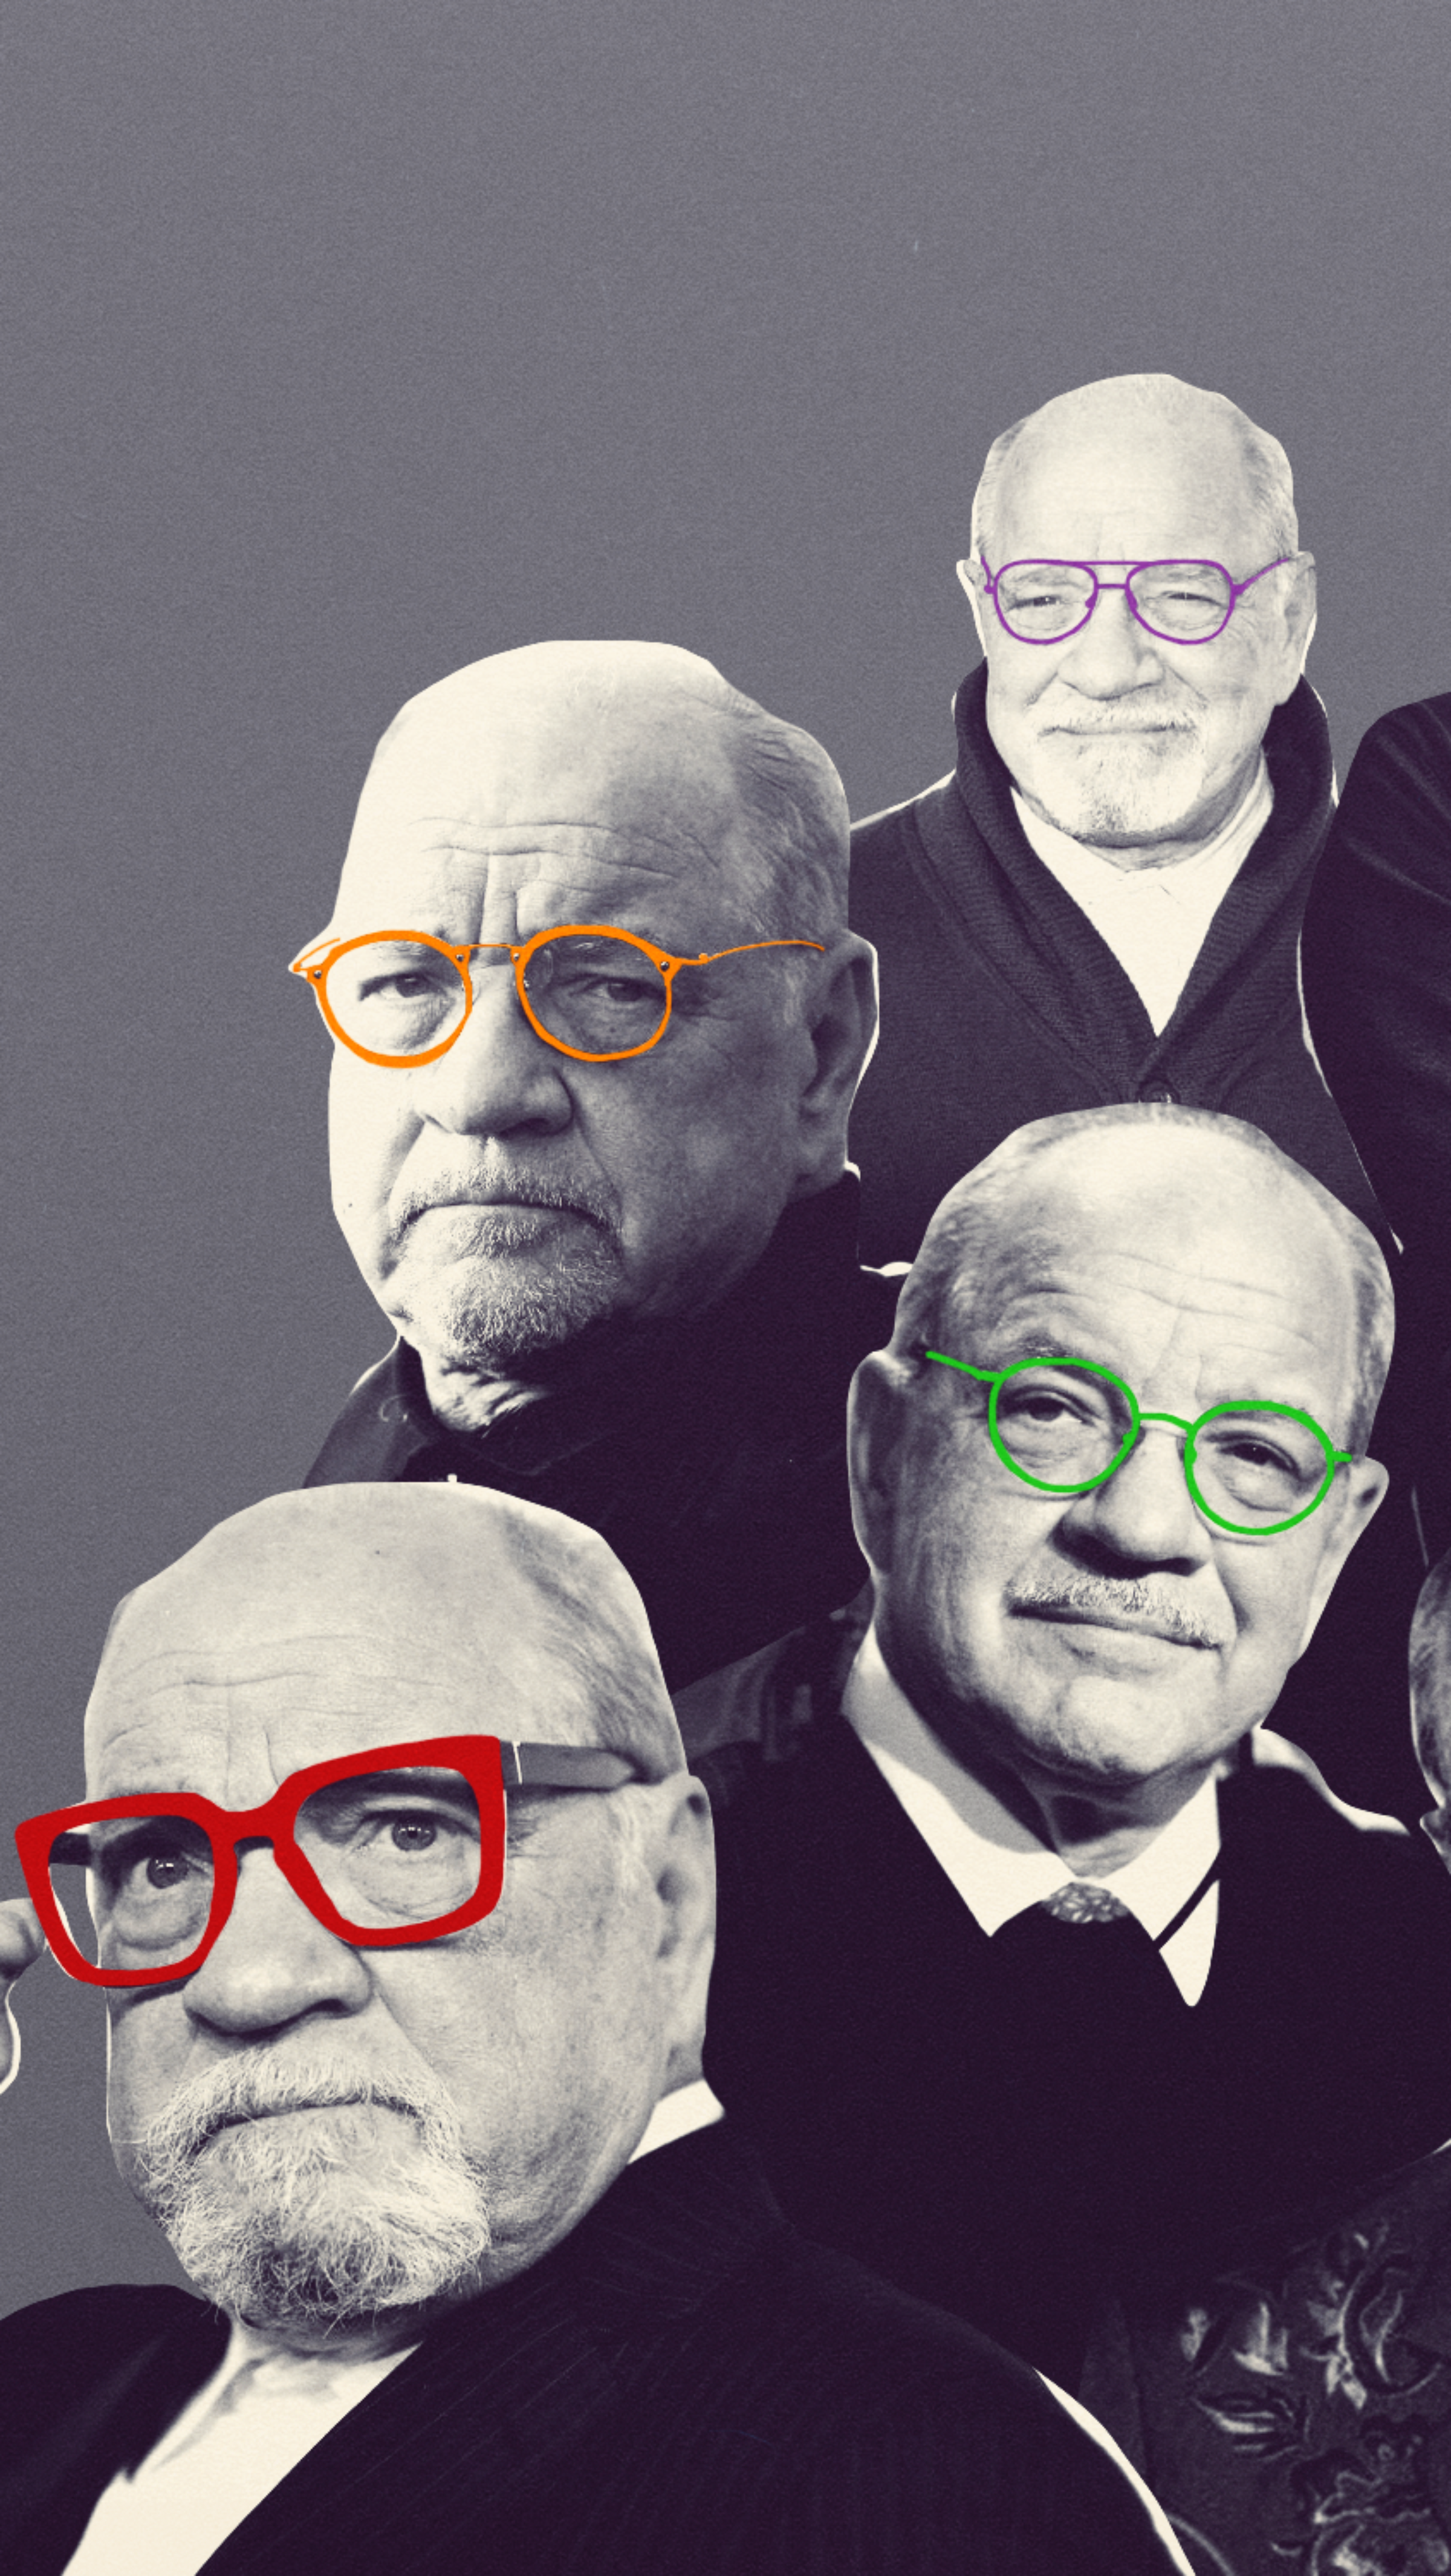 Paul Schrader Glasses Header 2400X1500 R02 Ljs 916 Mobile